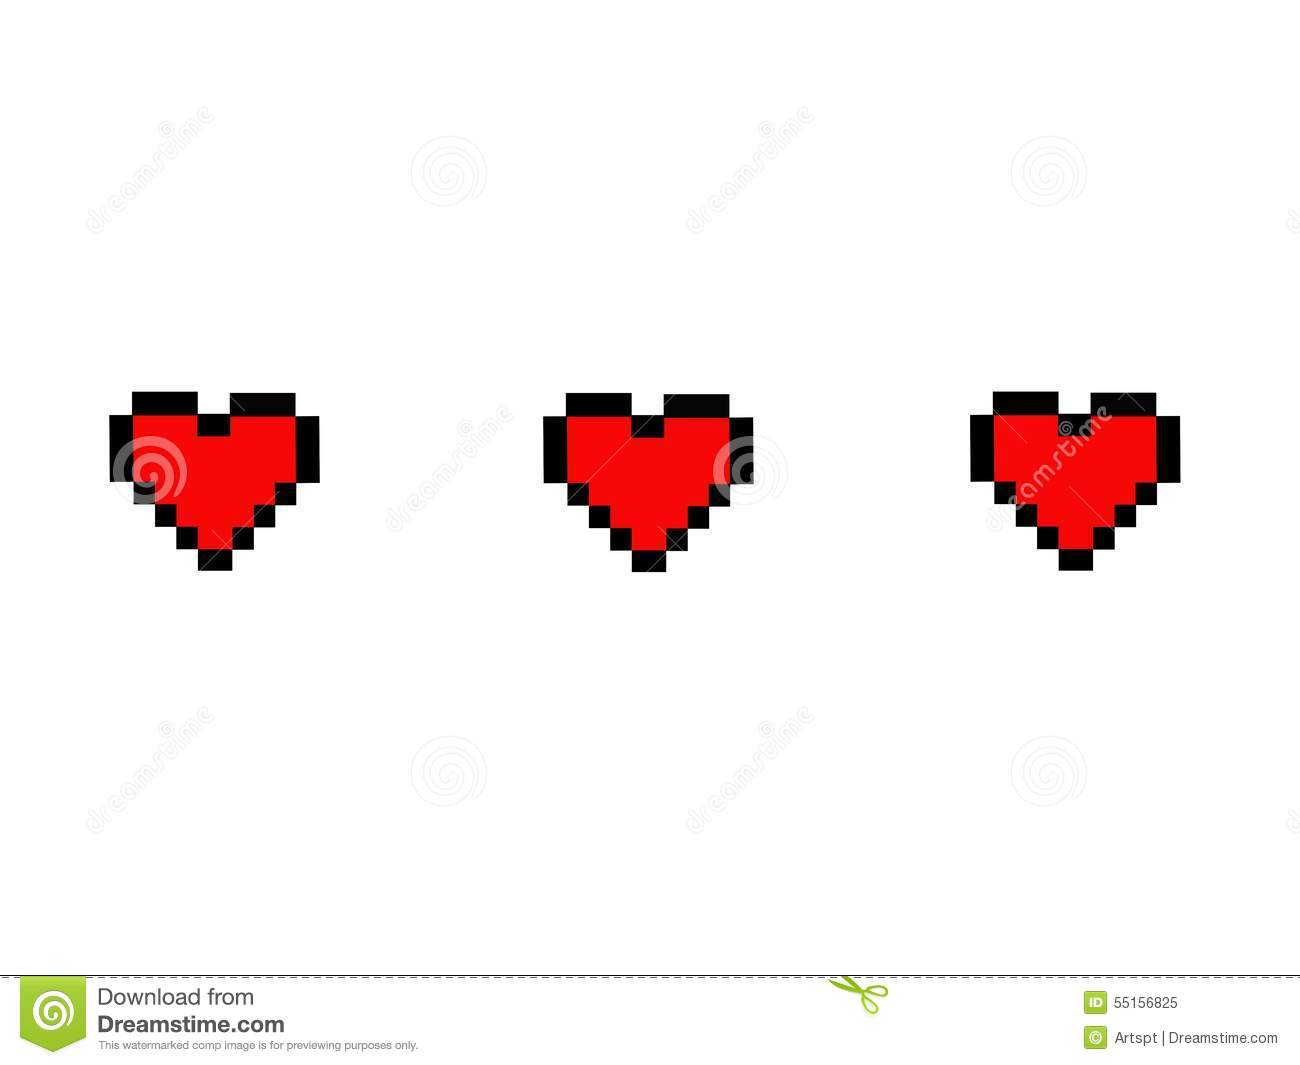 Game of hearts clipart svg transparent stock Game of hearts clipart - ClipartFest svg transparent stock